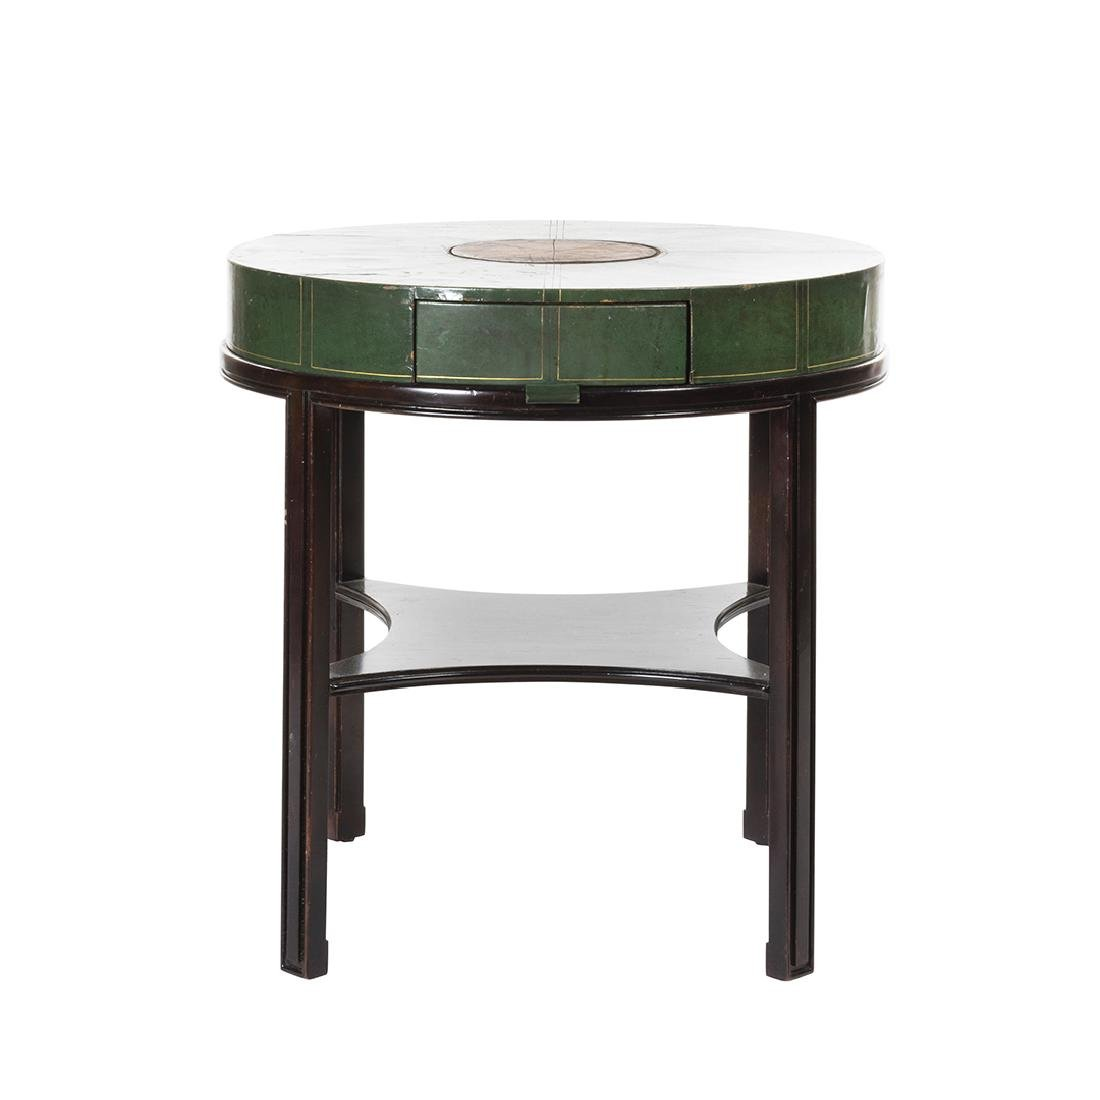 Tommi Parzinger Center Table